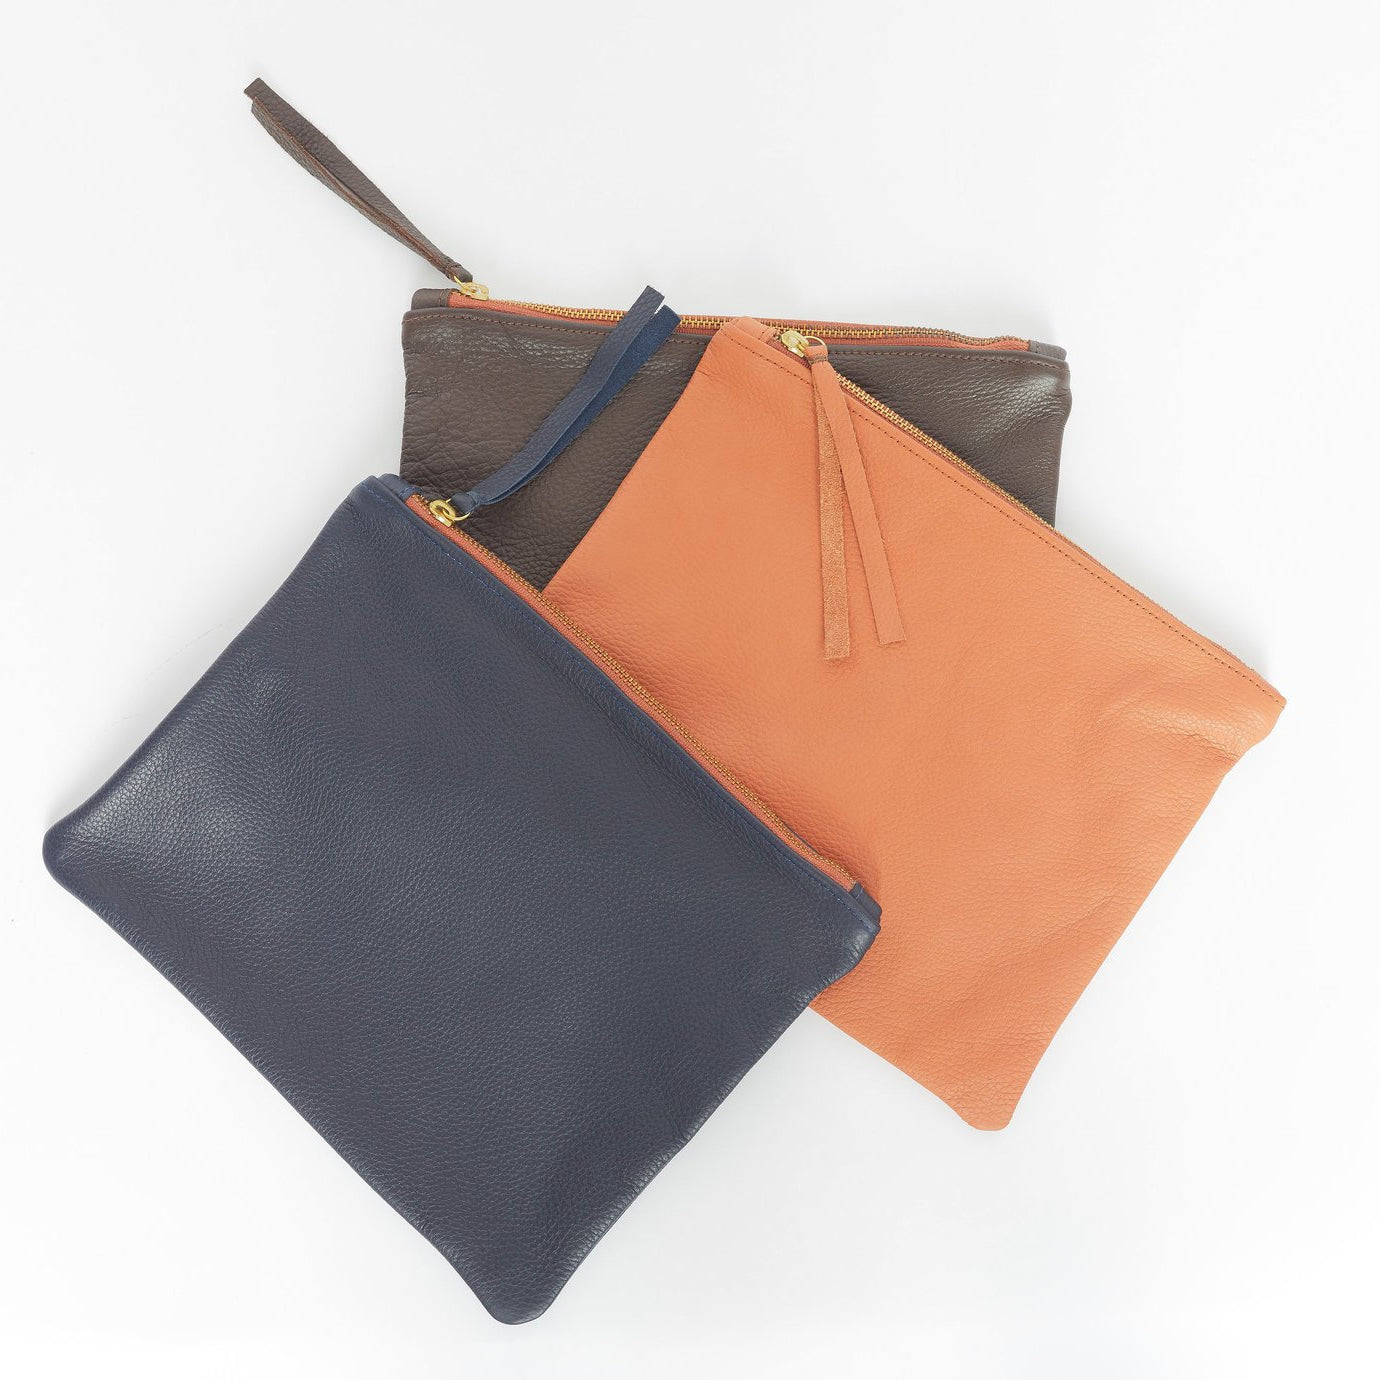 Haiti Design Co - Pebbled Leather Pouch